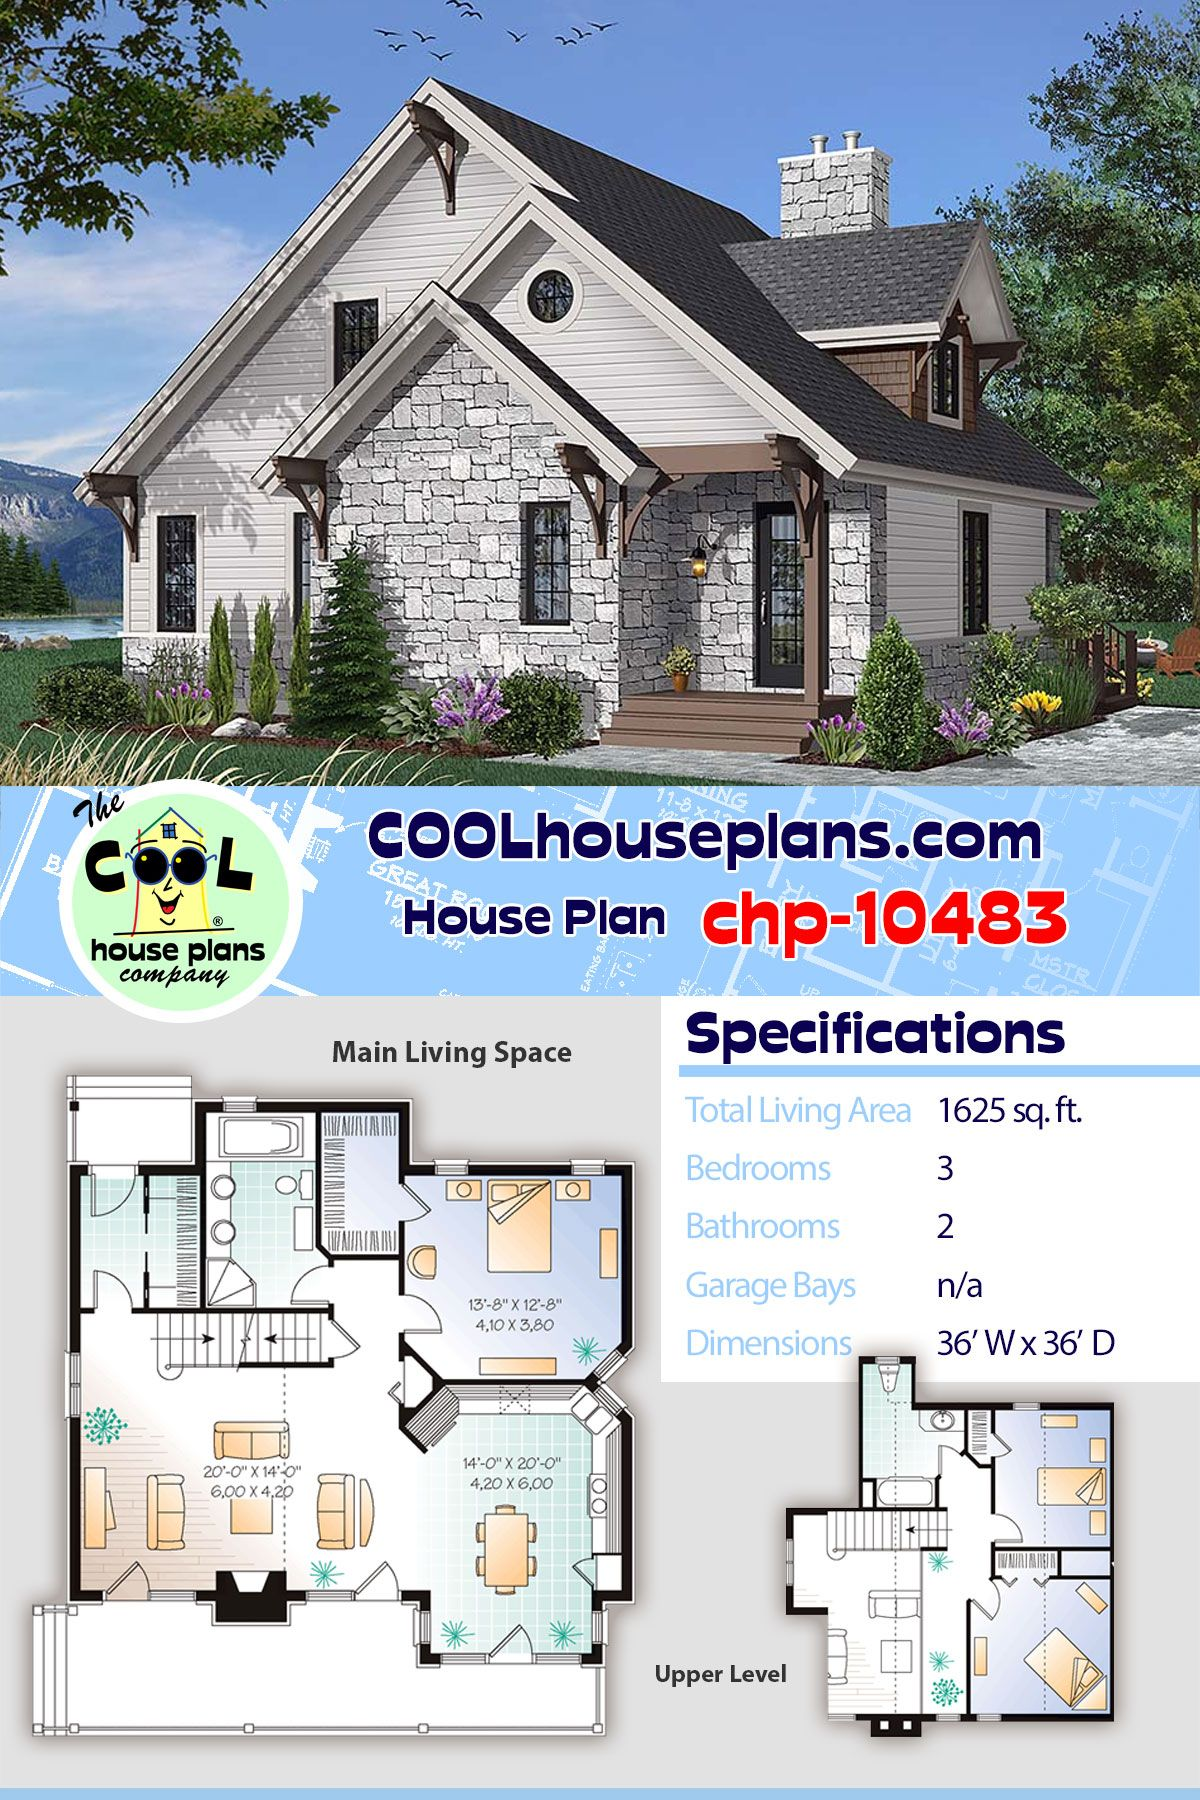 1625 Sq Ft Craftsman Cottage Home Plan Chp 10483 Has 3 Bedrooms 2 Baths Cottage House Plans Craftsman Cottage House Plans